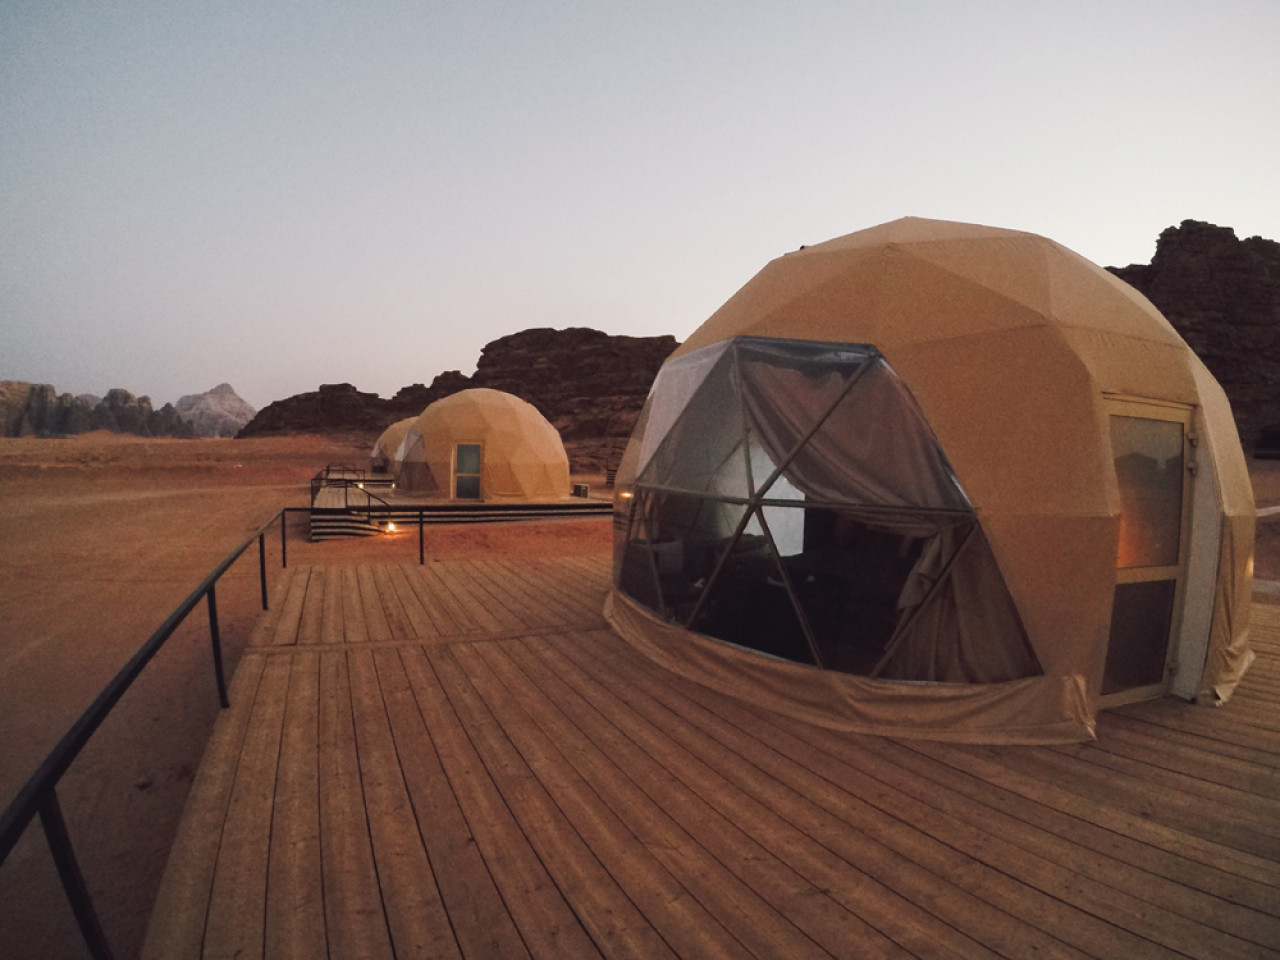 We reached the Sun City Camp just a few moments before it got completely dark and checked in to our Martian tents.